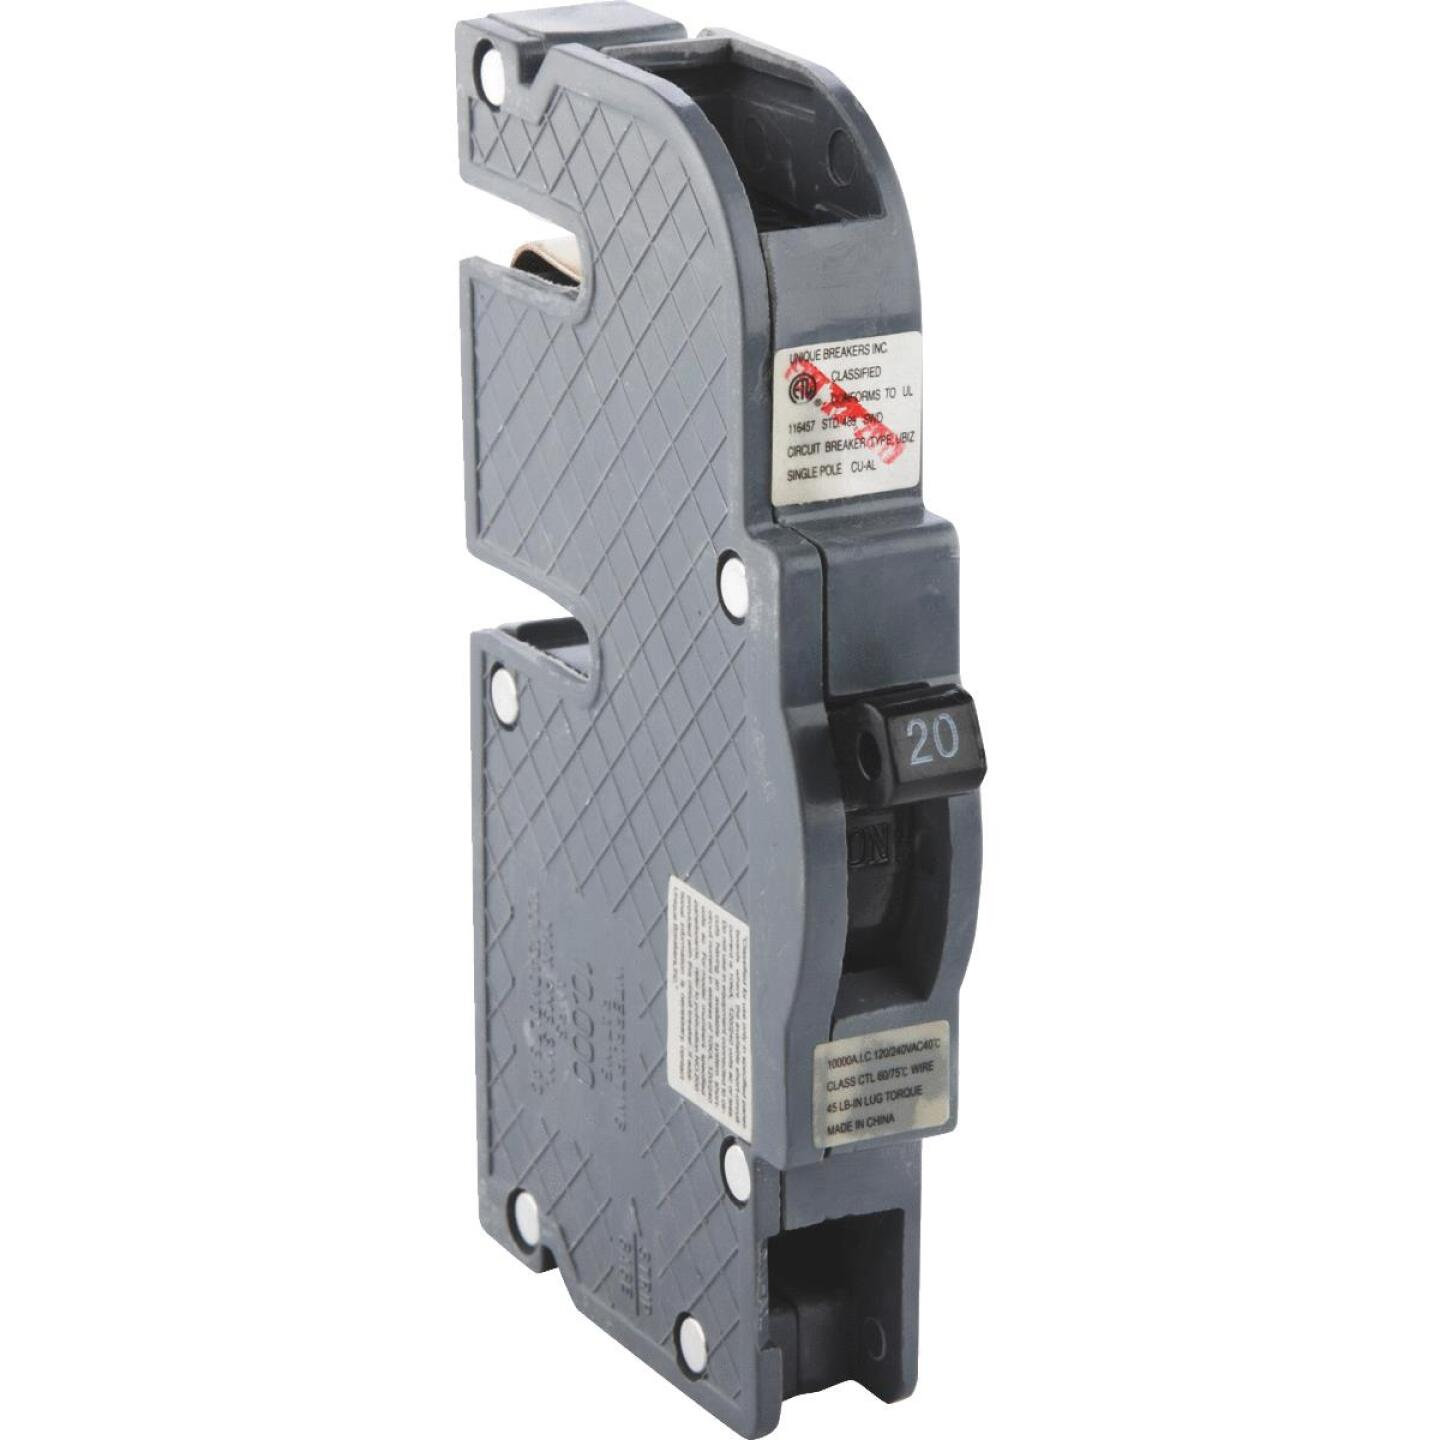 Connecticut Electric 20A Single-Pole Standard Trip Packaged Replacement Circuit Breaker For Zinsco Image 1